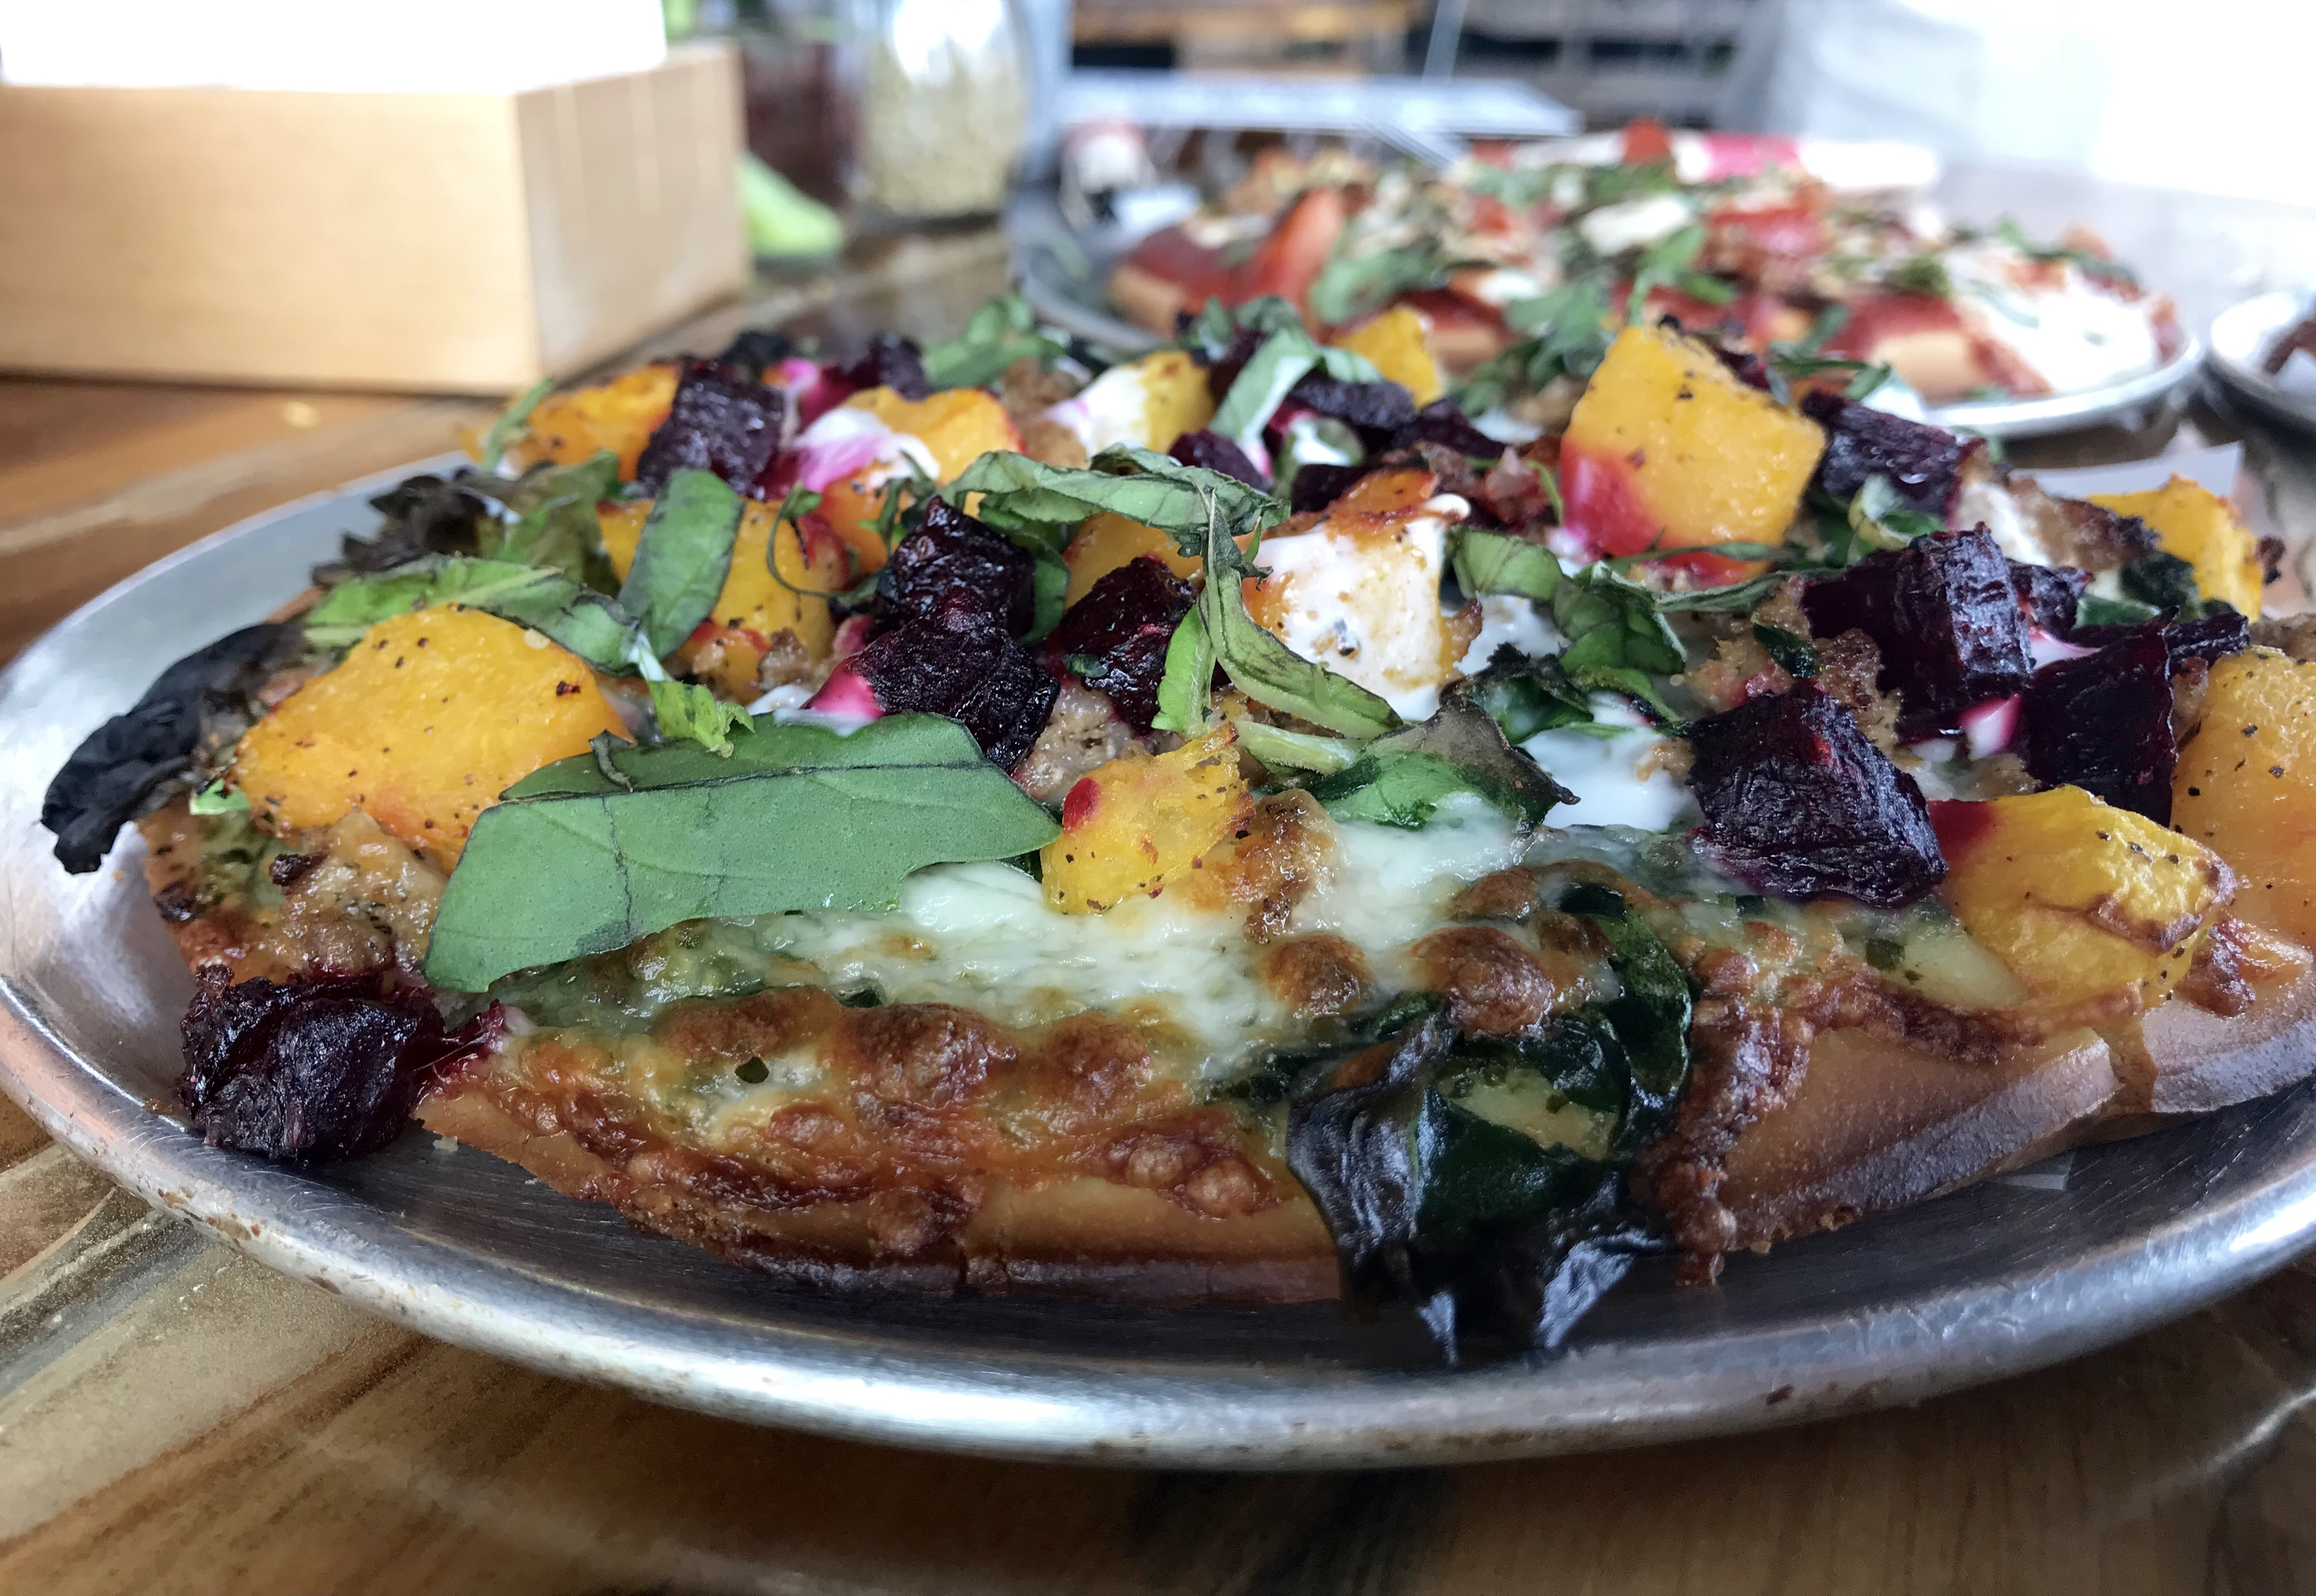 red tractor pizza - organic pizza in bozeman montana | dairy free, gluten free, soy free, grain free